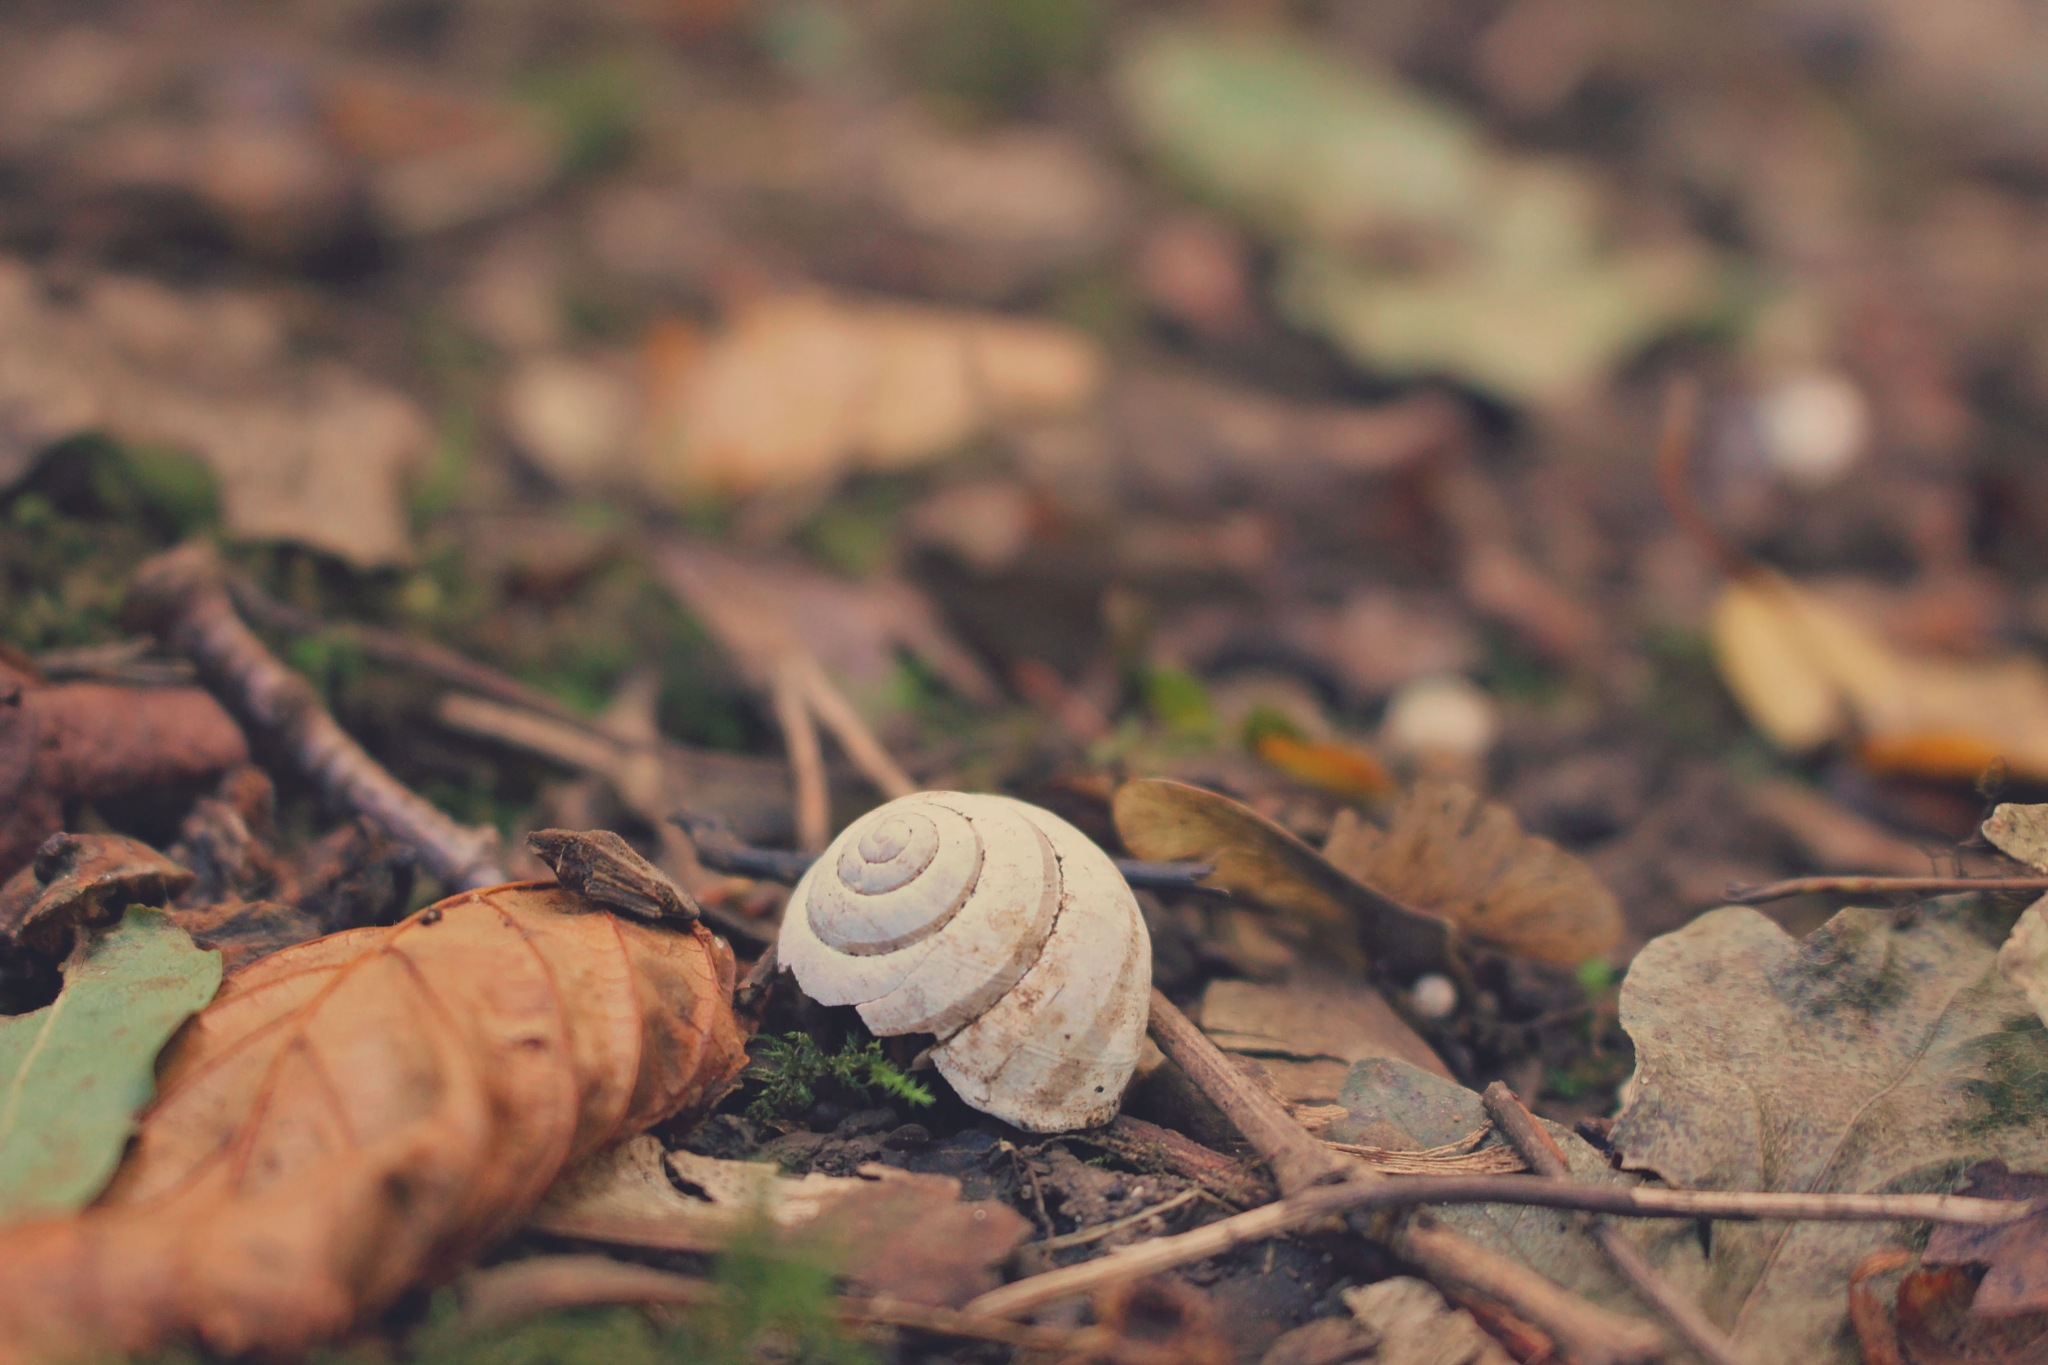 Shell on leaves by Anna Christina Maukner